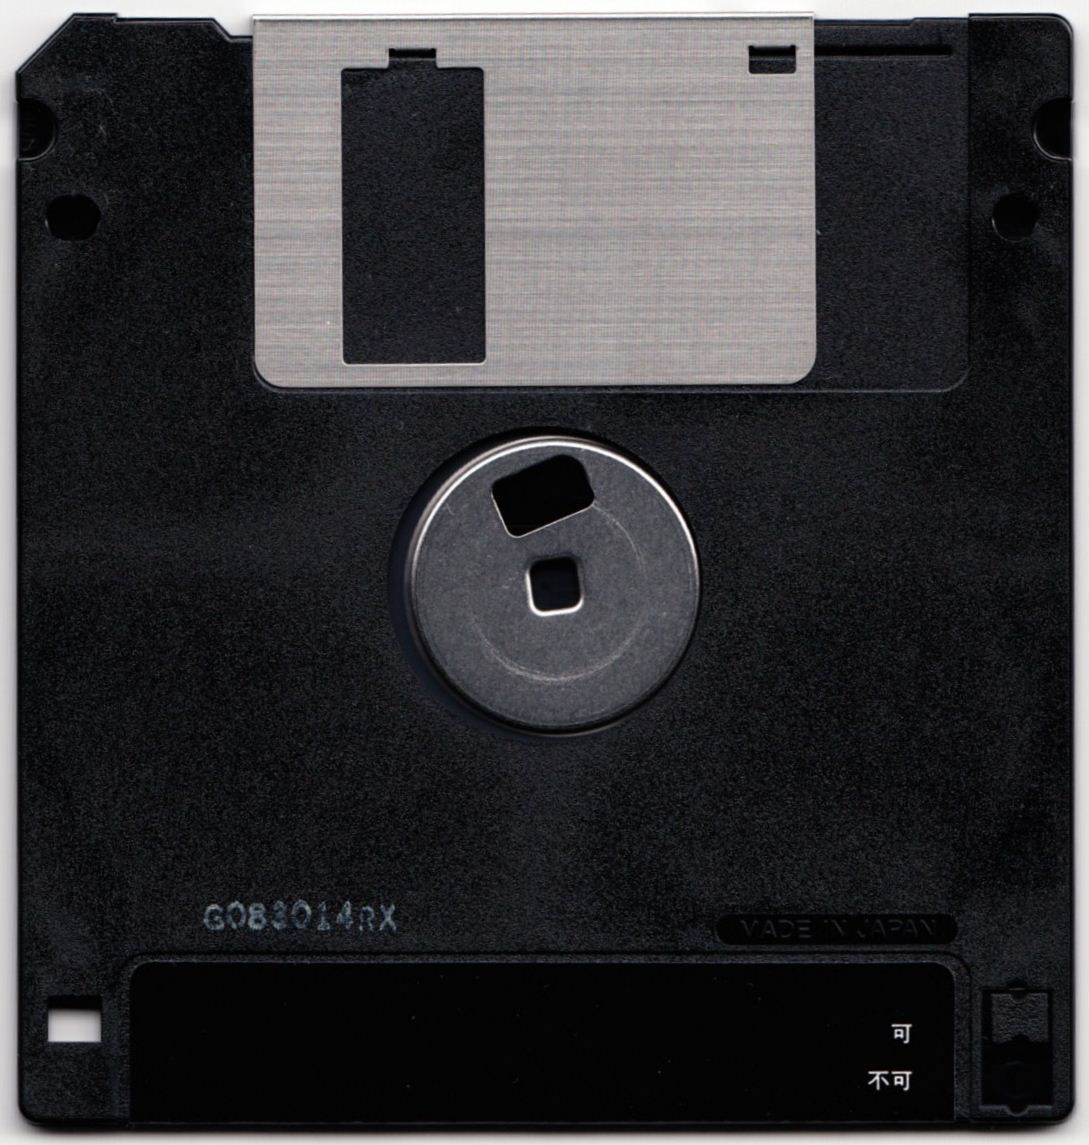 Game - Chaos Strikes Back - JP - PC-9801 - 3.5-inch - Save Disk - Back - Scan